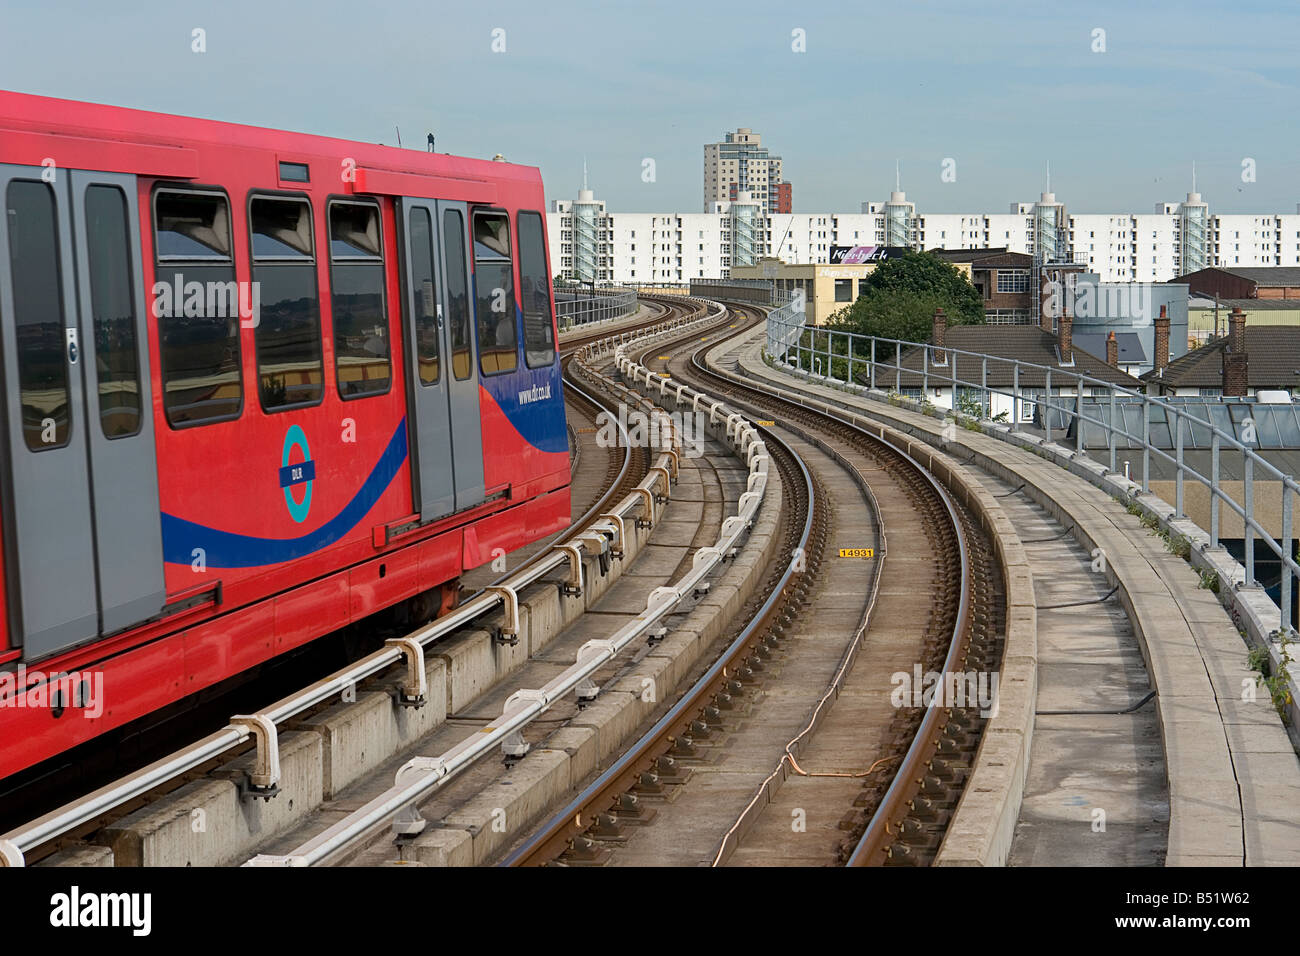 Canning Town east London on the DLR - Docklands Light Railway - Stock Image